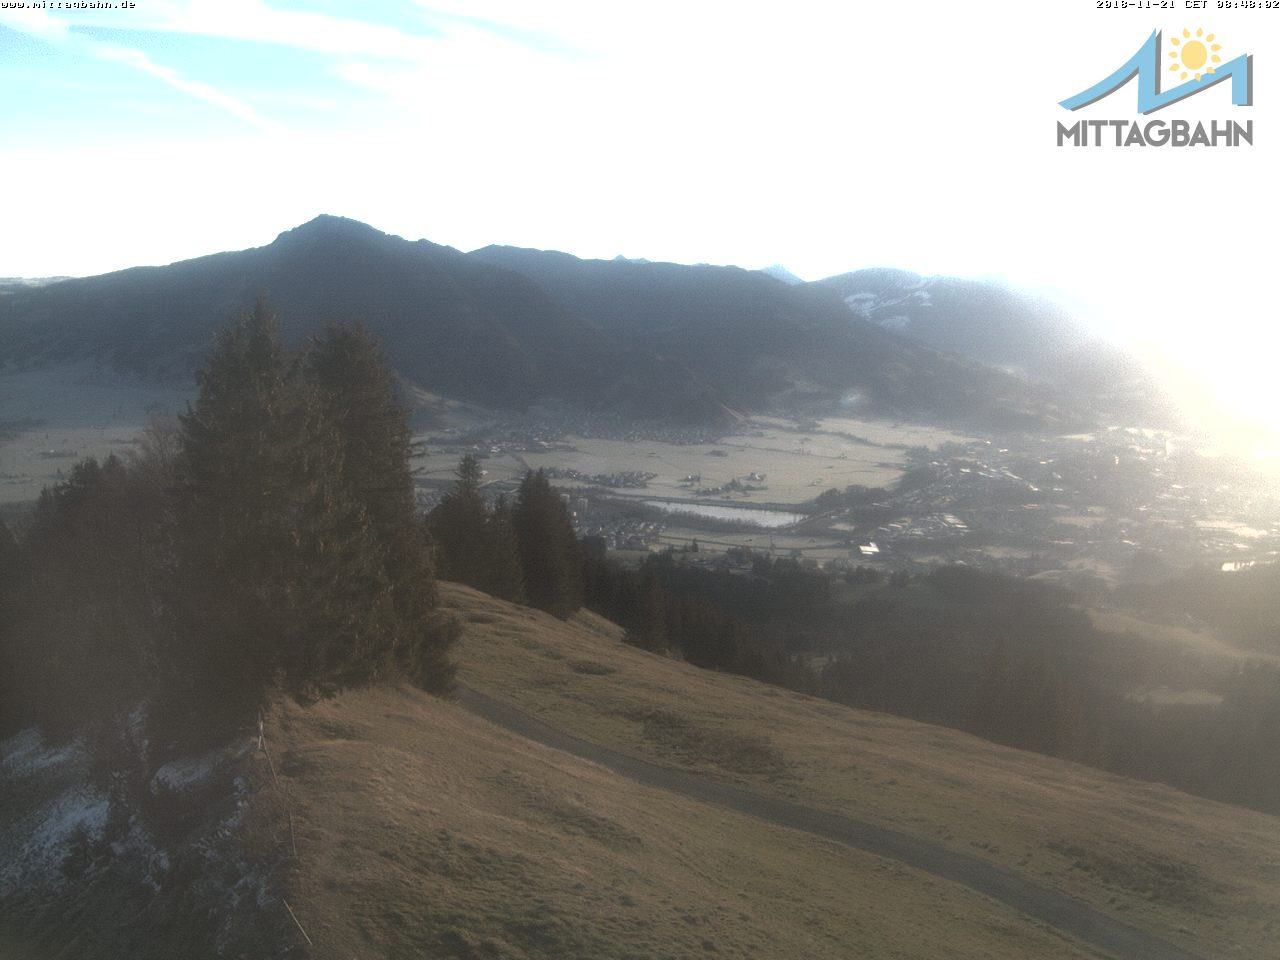 Webcam Ski Resort Immenstadt - Mittag cam 6 - Bavaria Alps - Allgäu